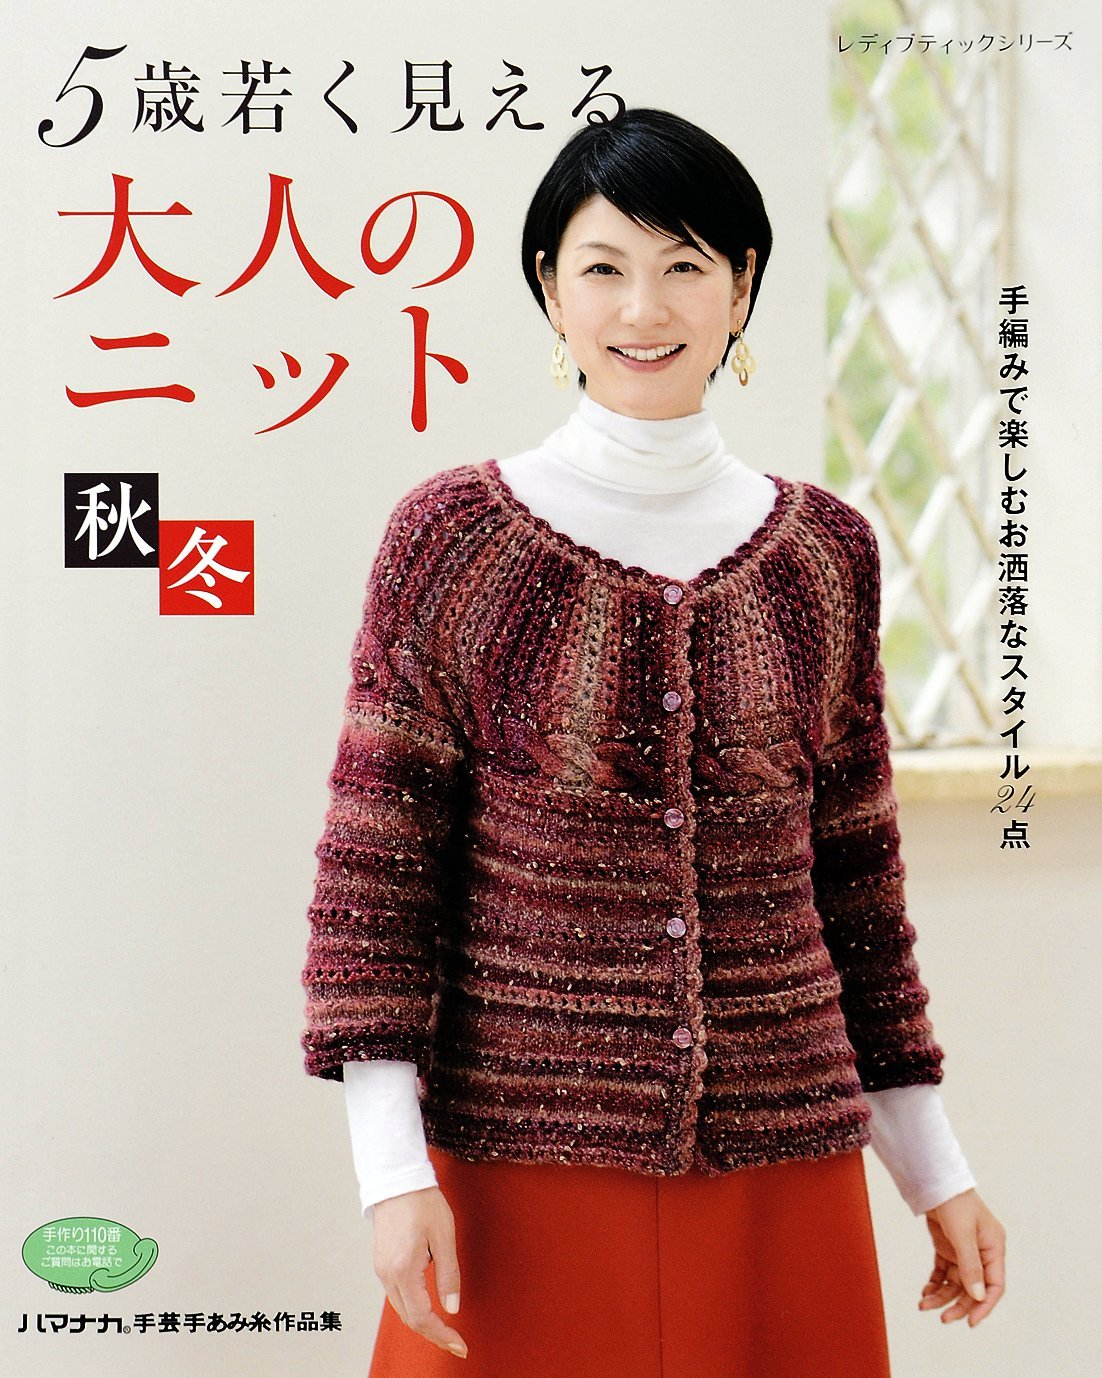 Look 5 years younger adult knit fall